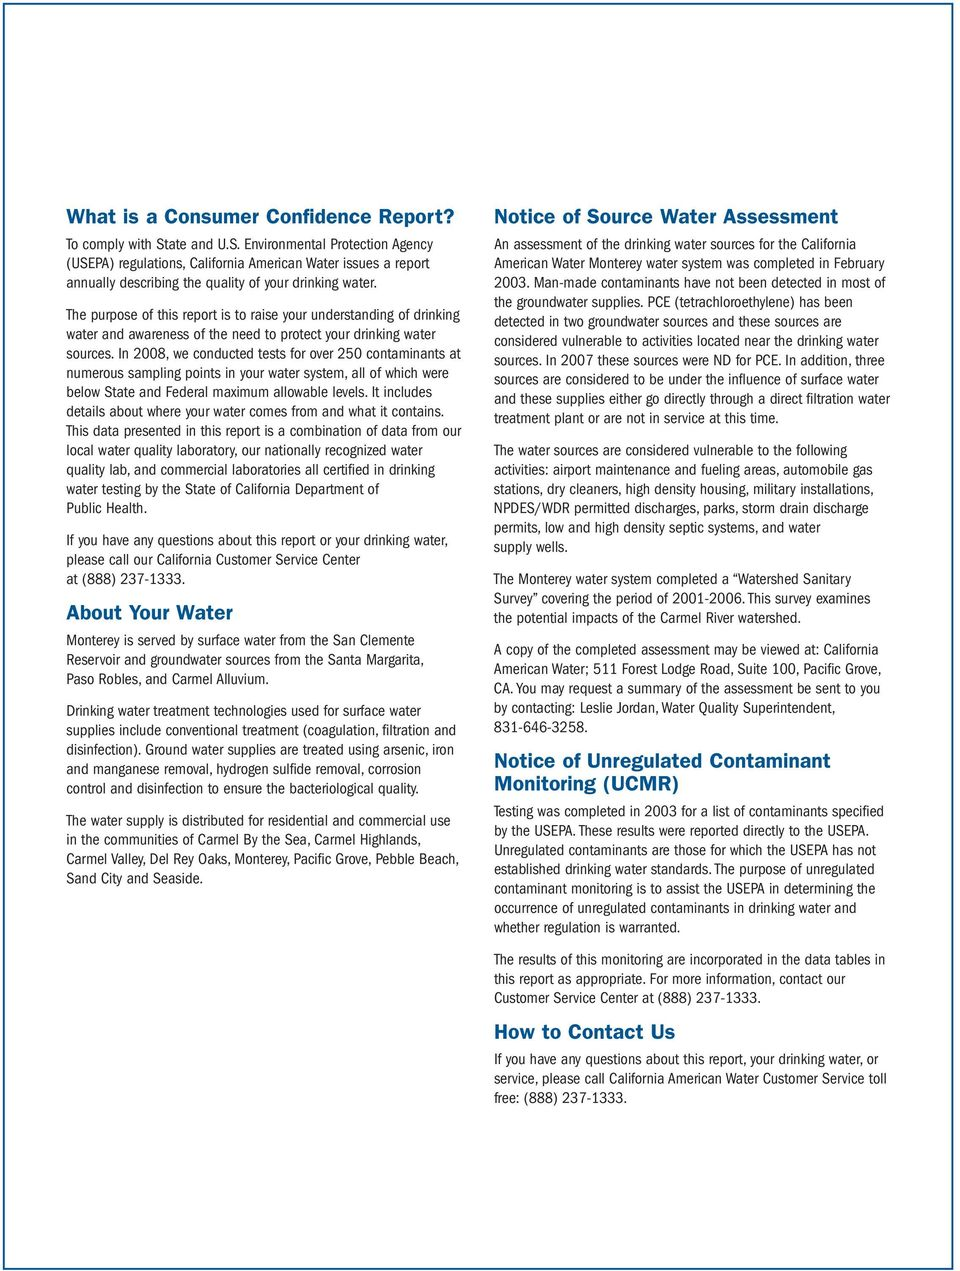 The purpose of this report is to raise your understanding of drinking water and awareness of the need to protect your drinking water sources.